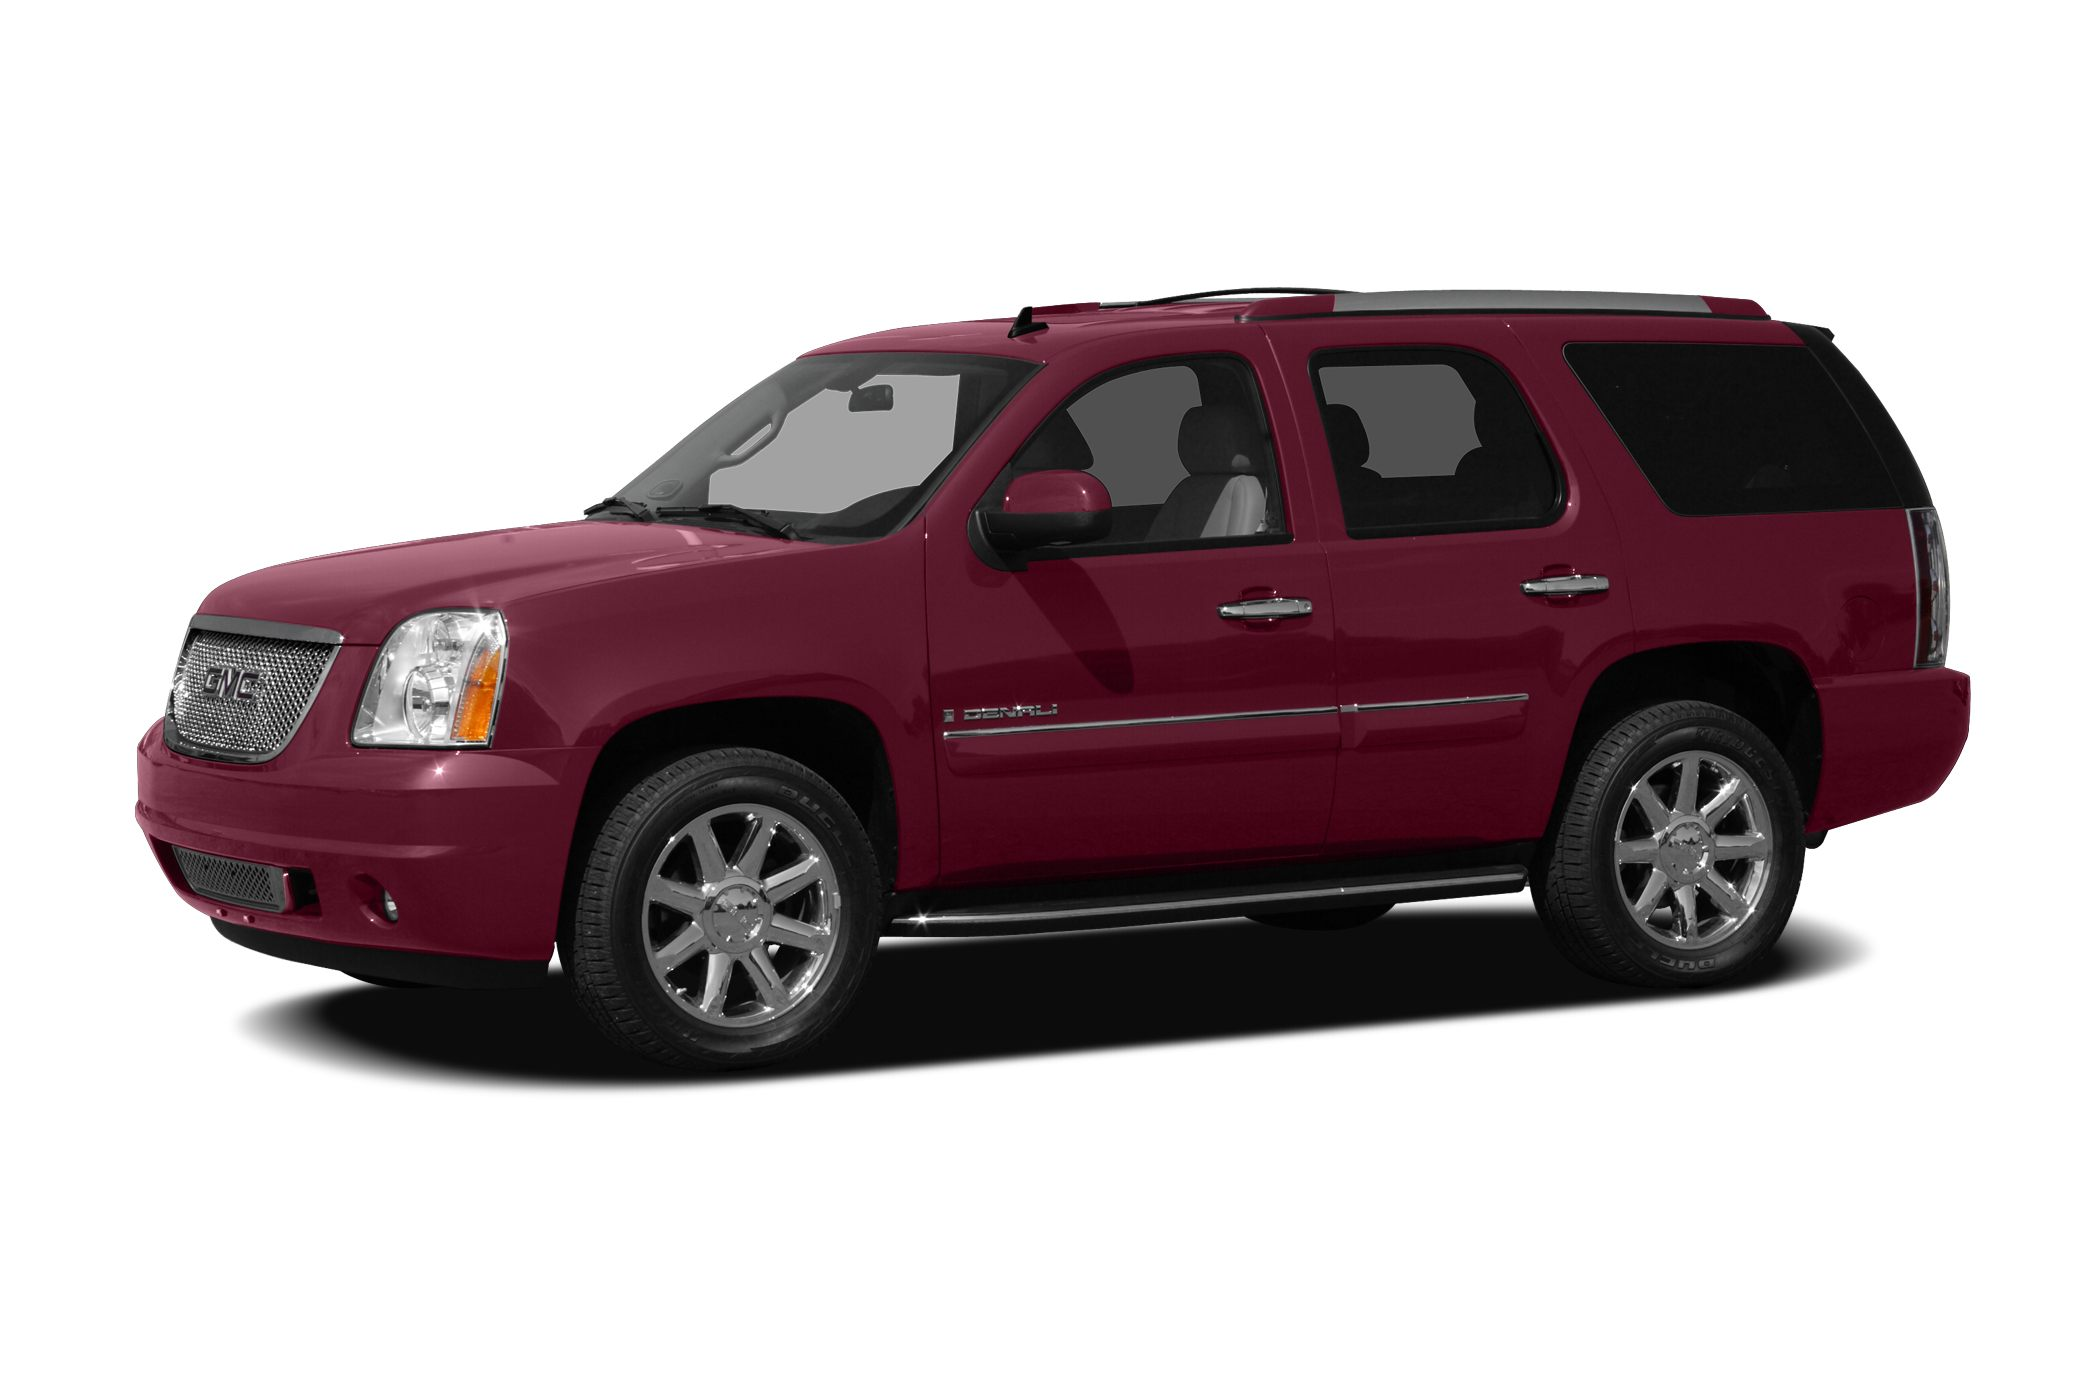 2008 GMC Yukon Denali SUV for sale in Baltimore for $22,880 with 104,006 miles.